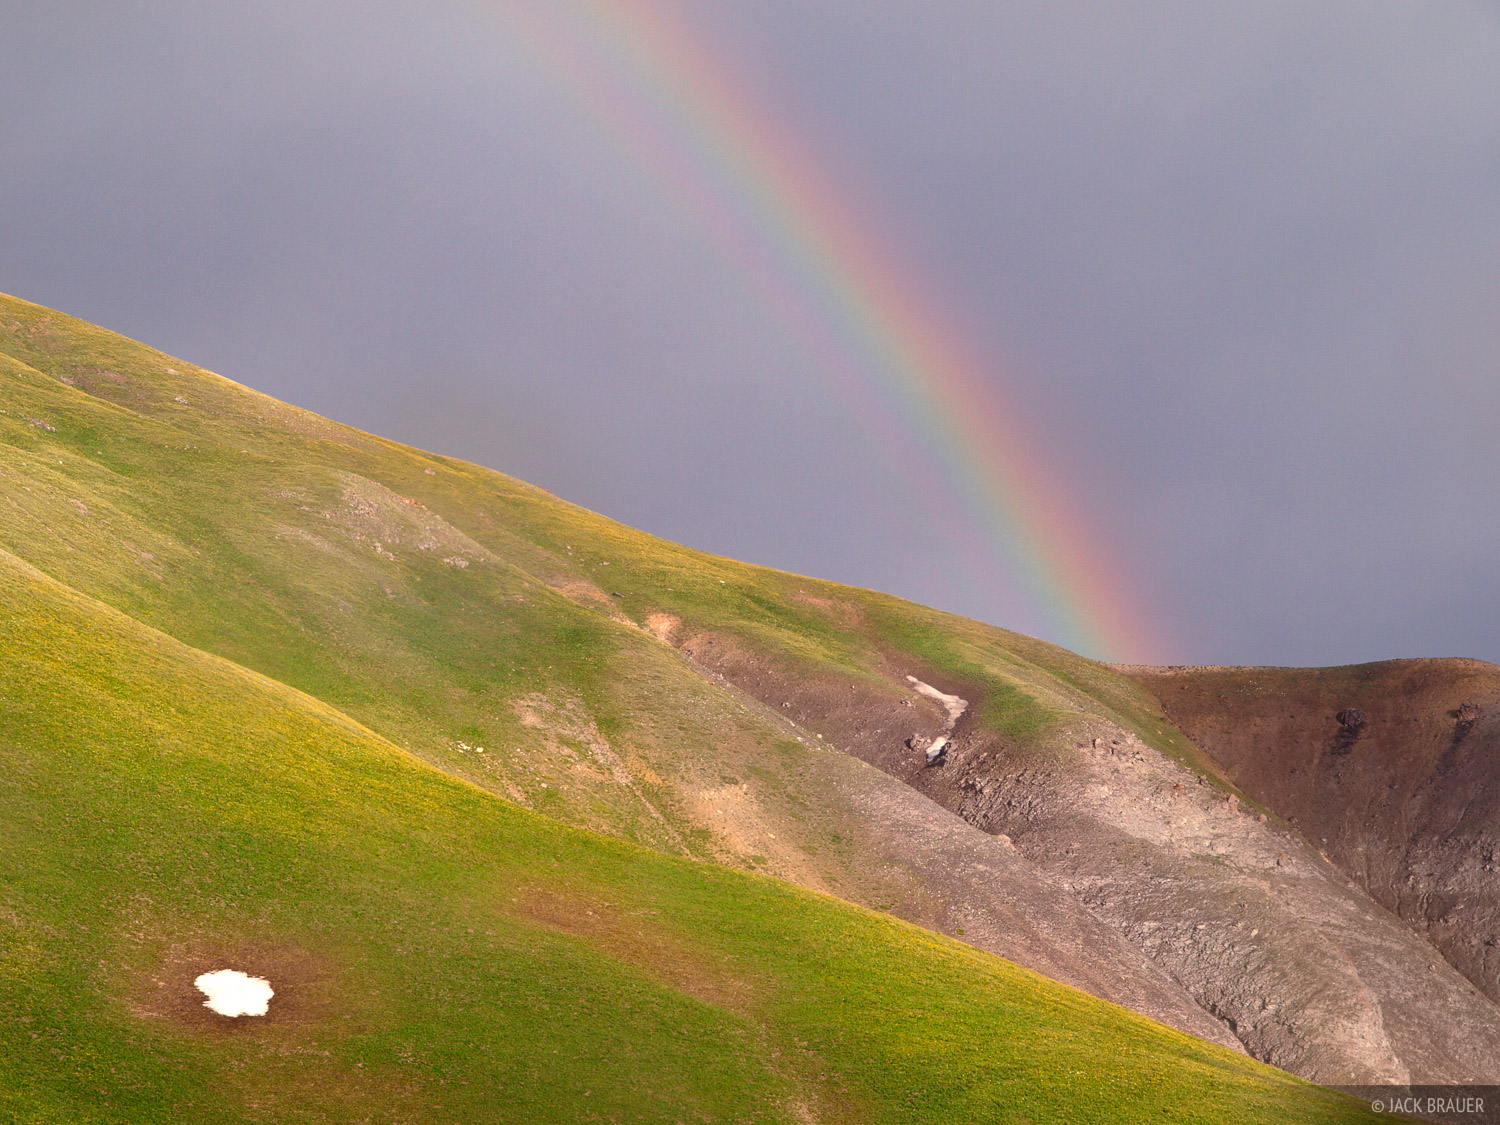 tundra, rainbow, Colorado, photo